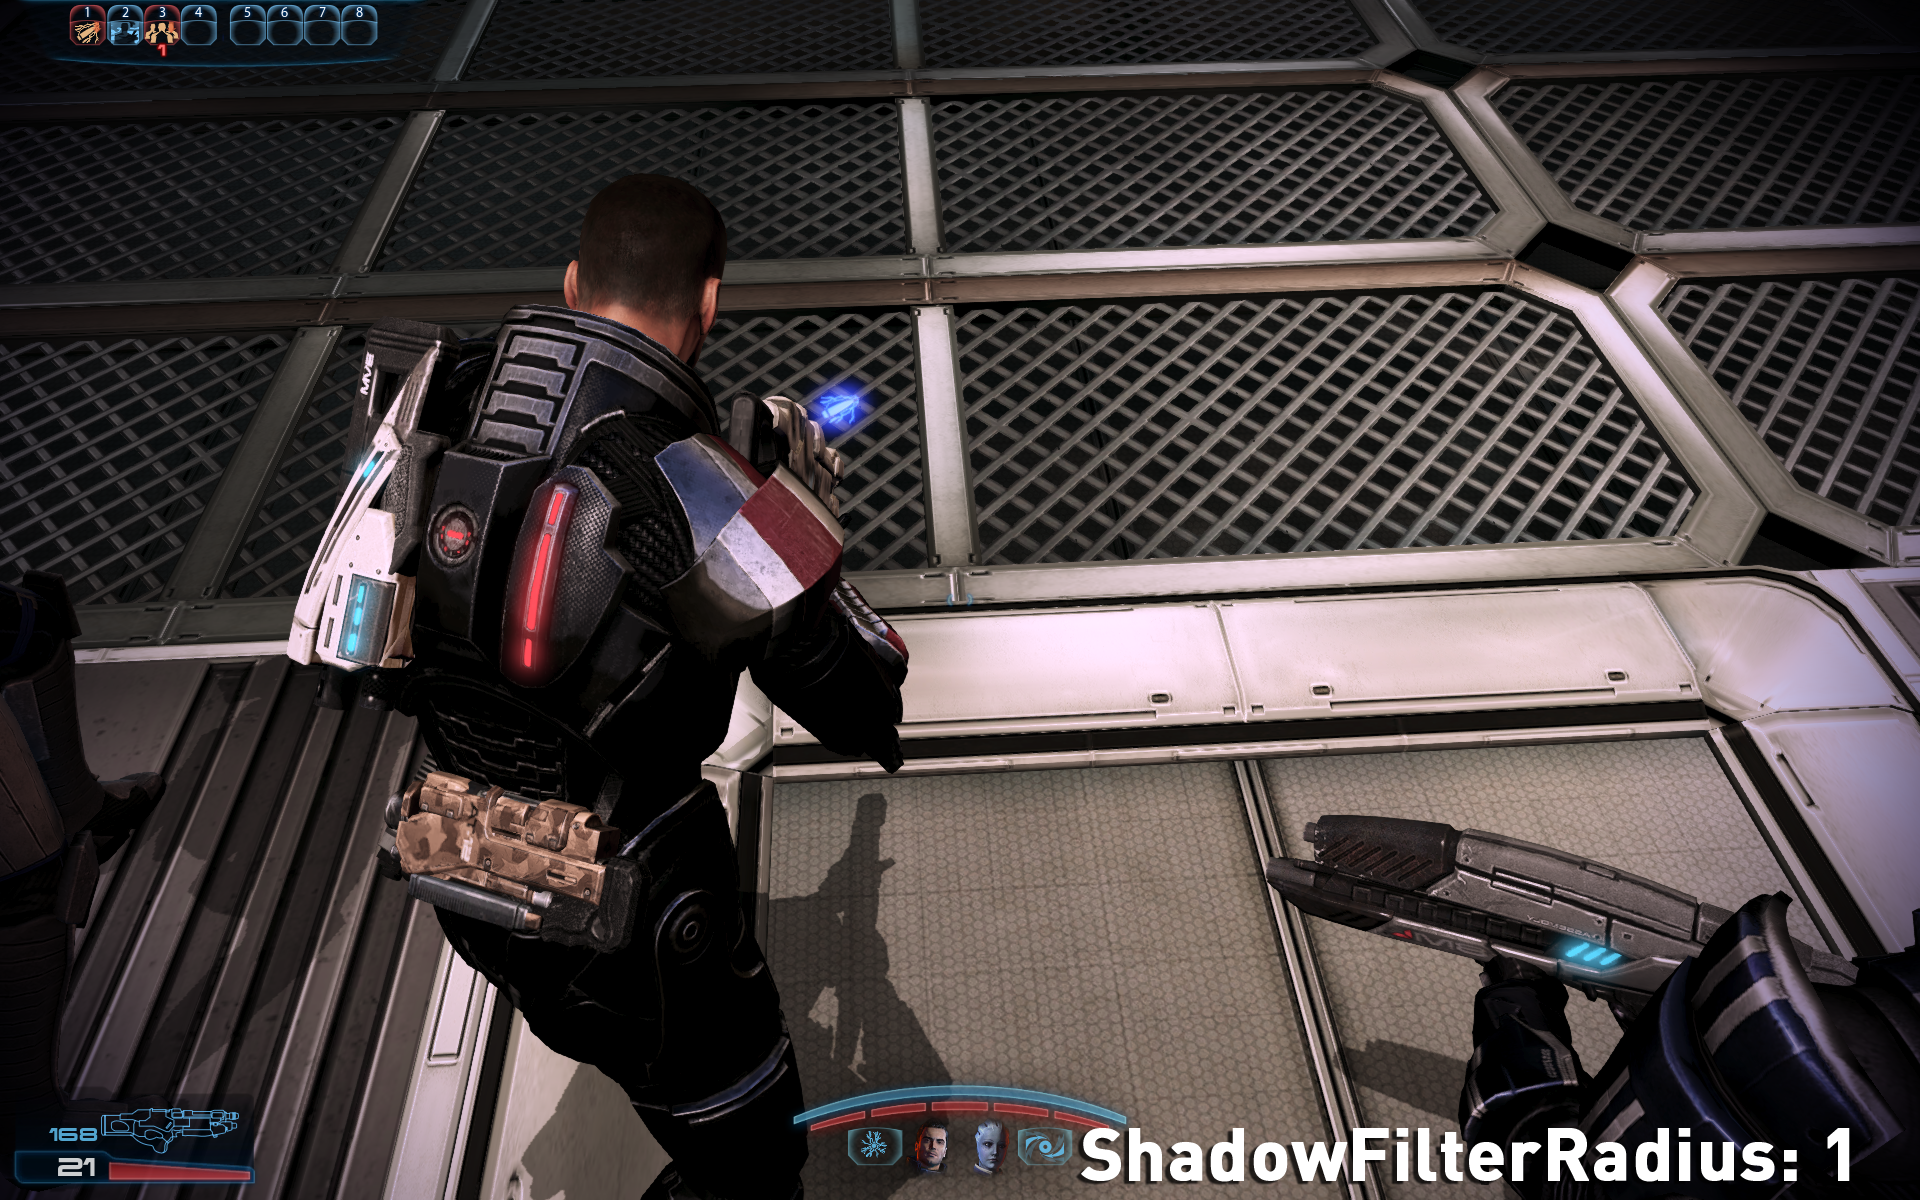 Mass effect 3 download patch sexual pic